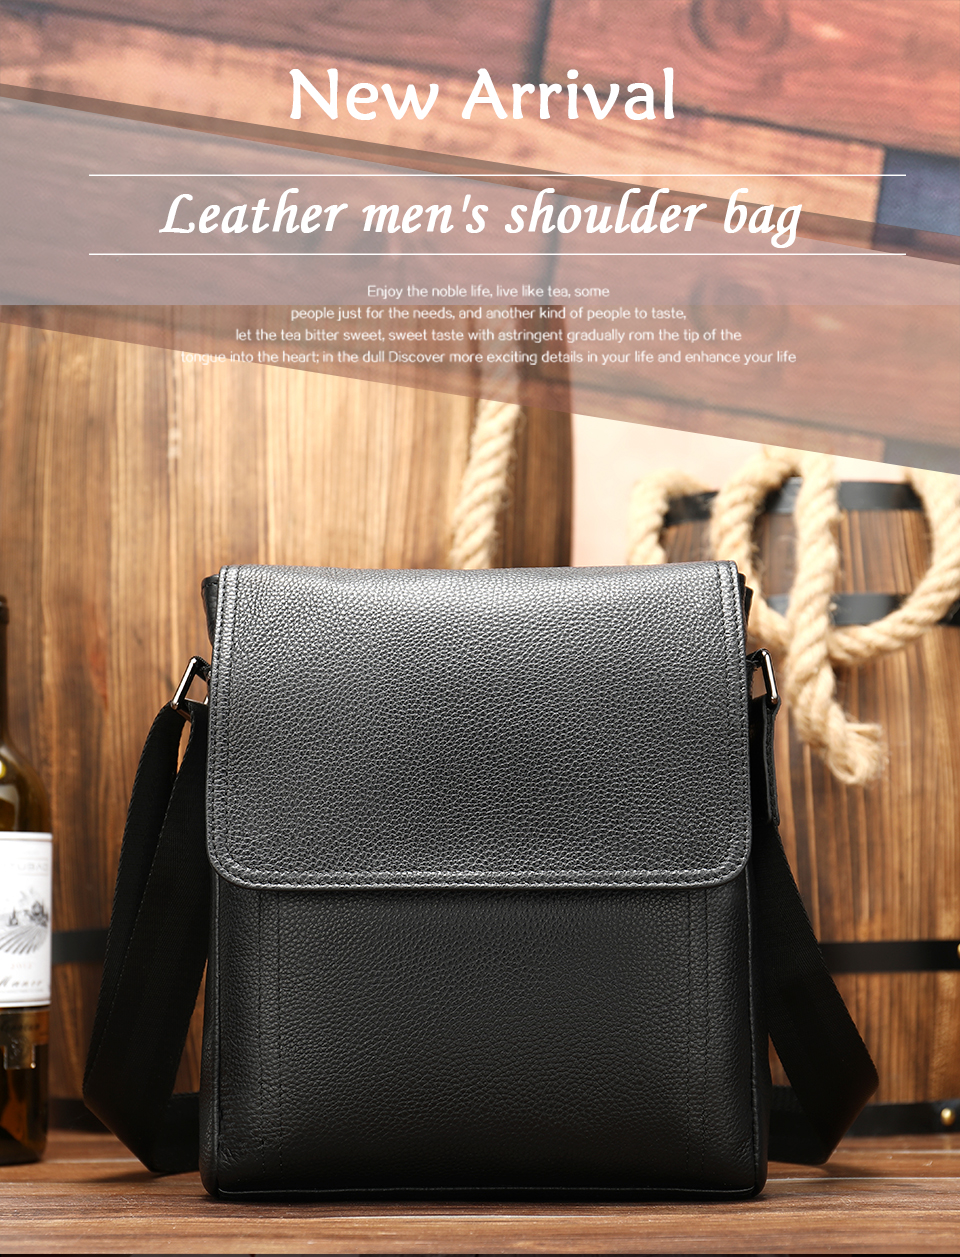 1 Famous Brand Leather Messenger Men's Shoulder Bag Male Casual Business Crossbody Tote Bags for Men Small Flap Handbag bolsas